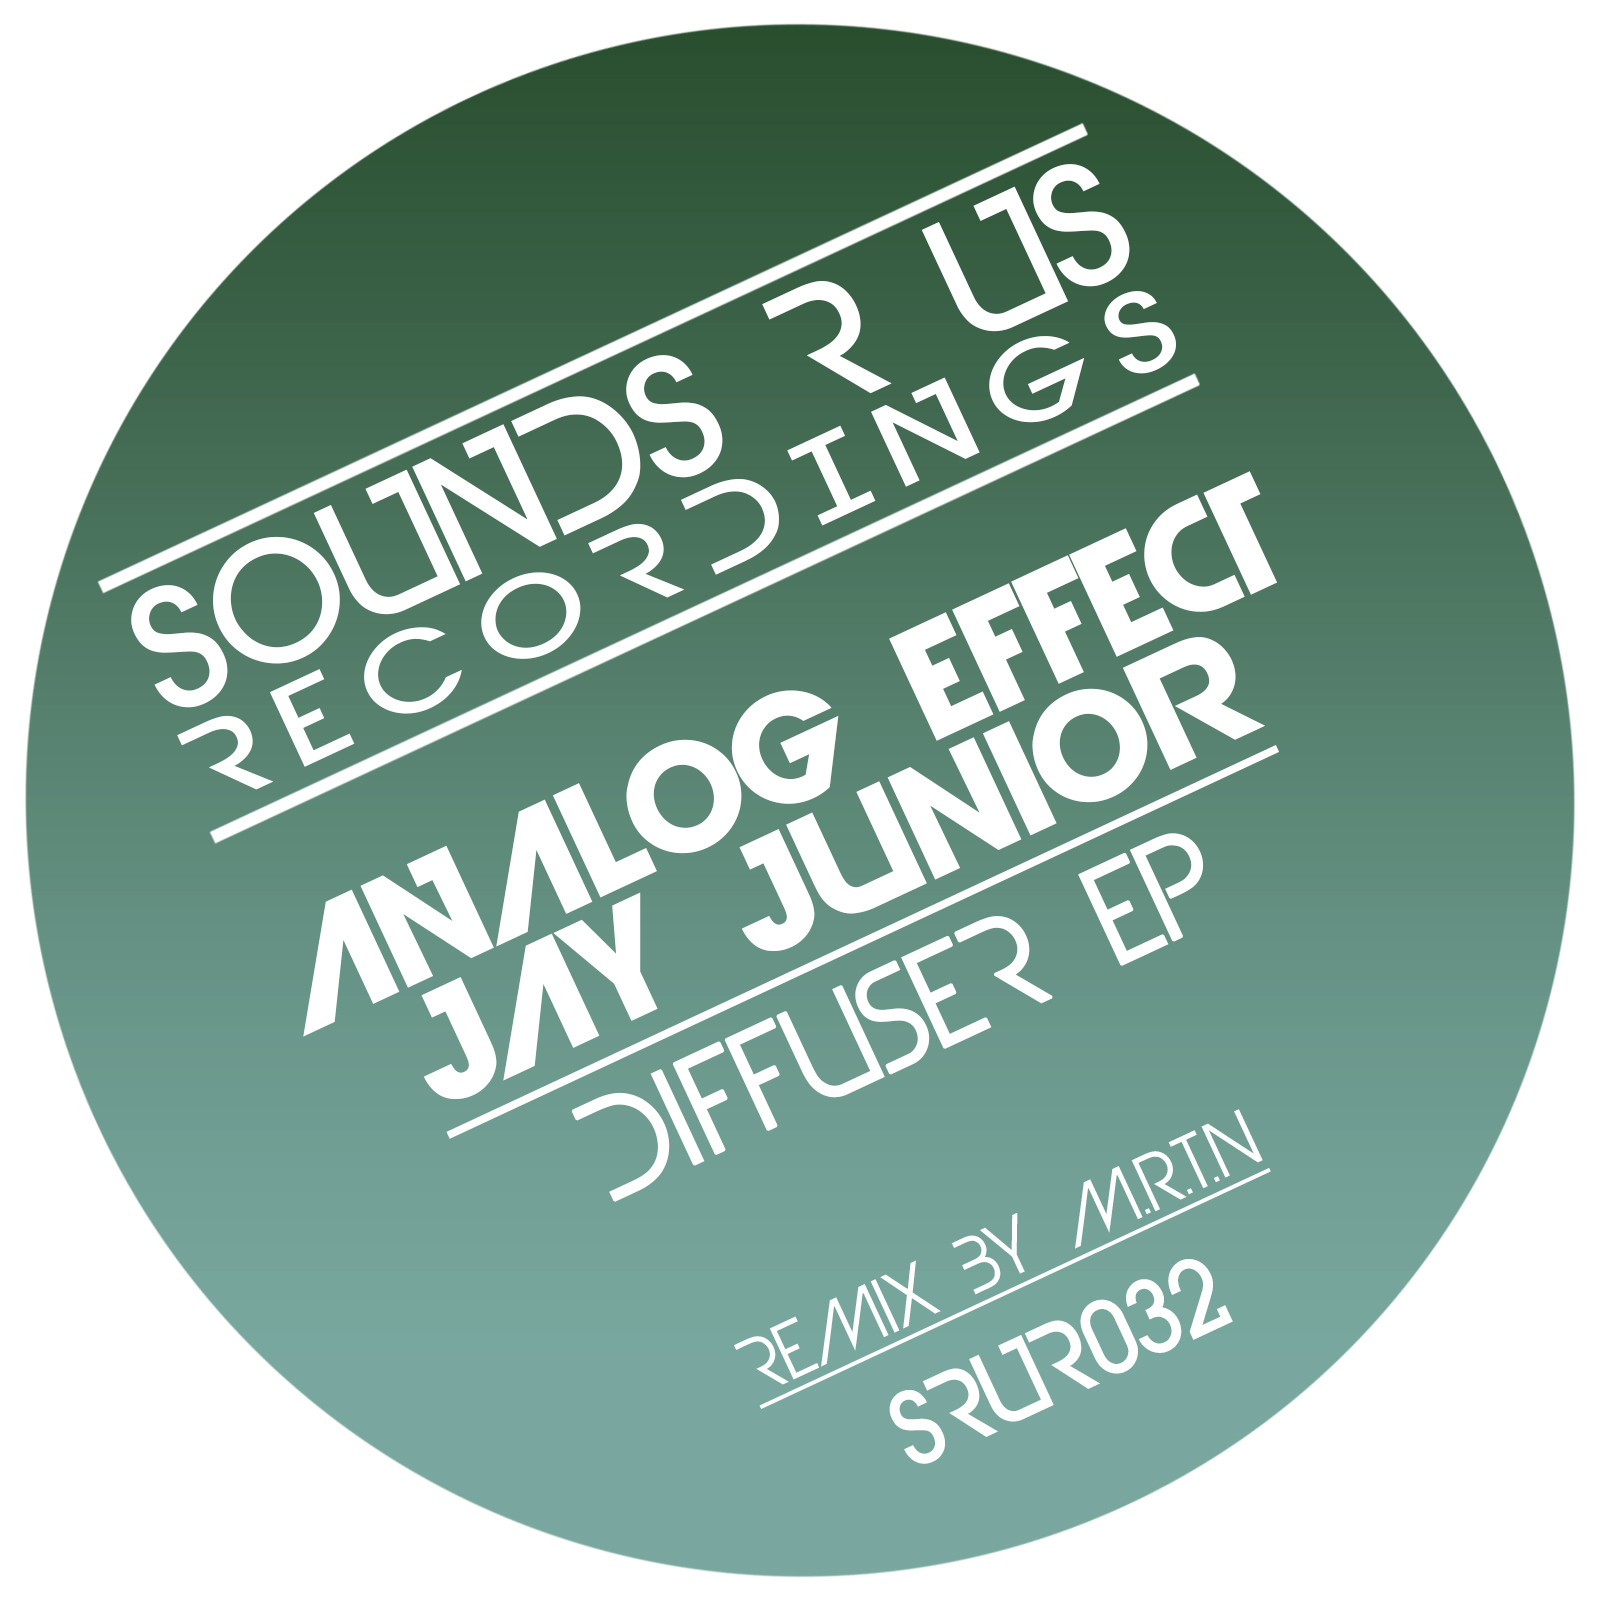 SRUR032---Analog-Effect-&-Jay-Junior